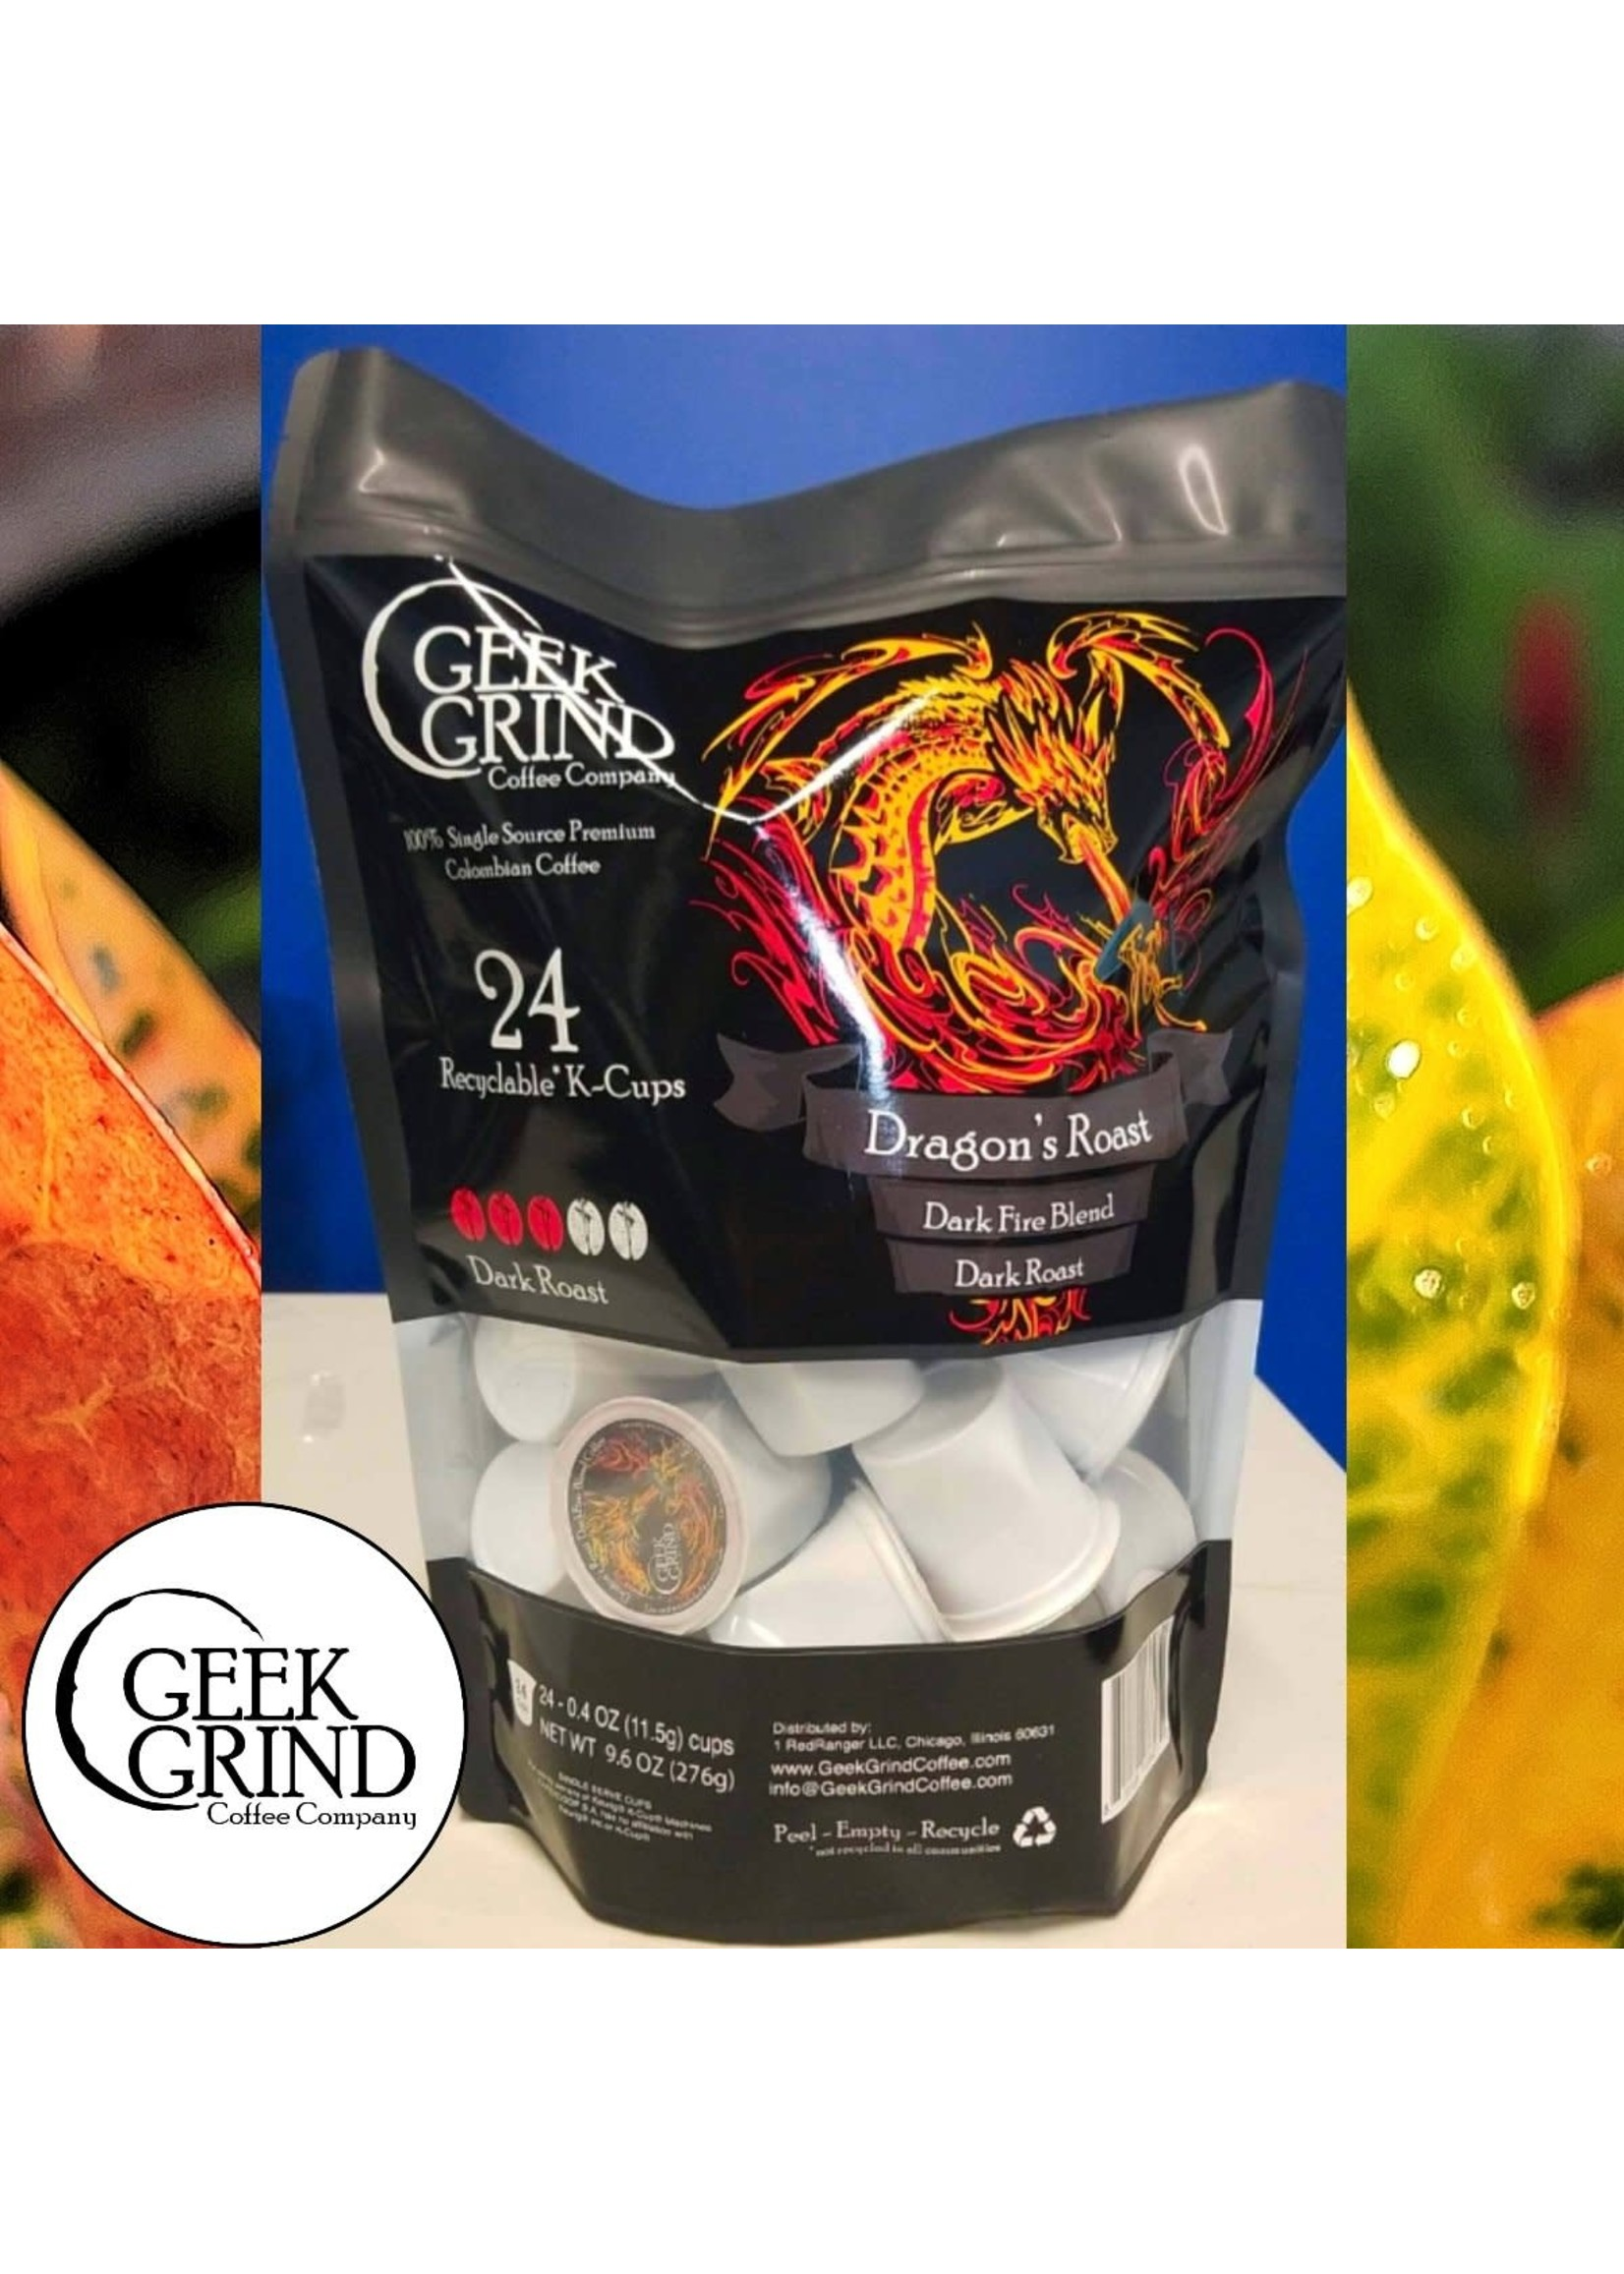 Geek Grind Dragons Roast - Dark Roast Coffee - K-Cups for Keurig - 24 K-Cup Pack - 24 K-Cup Pods - Individual Pouch of 24 KCups